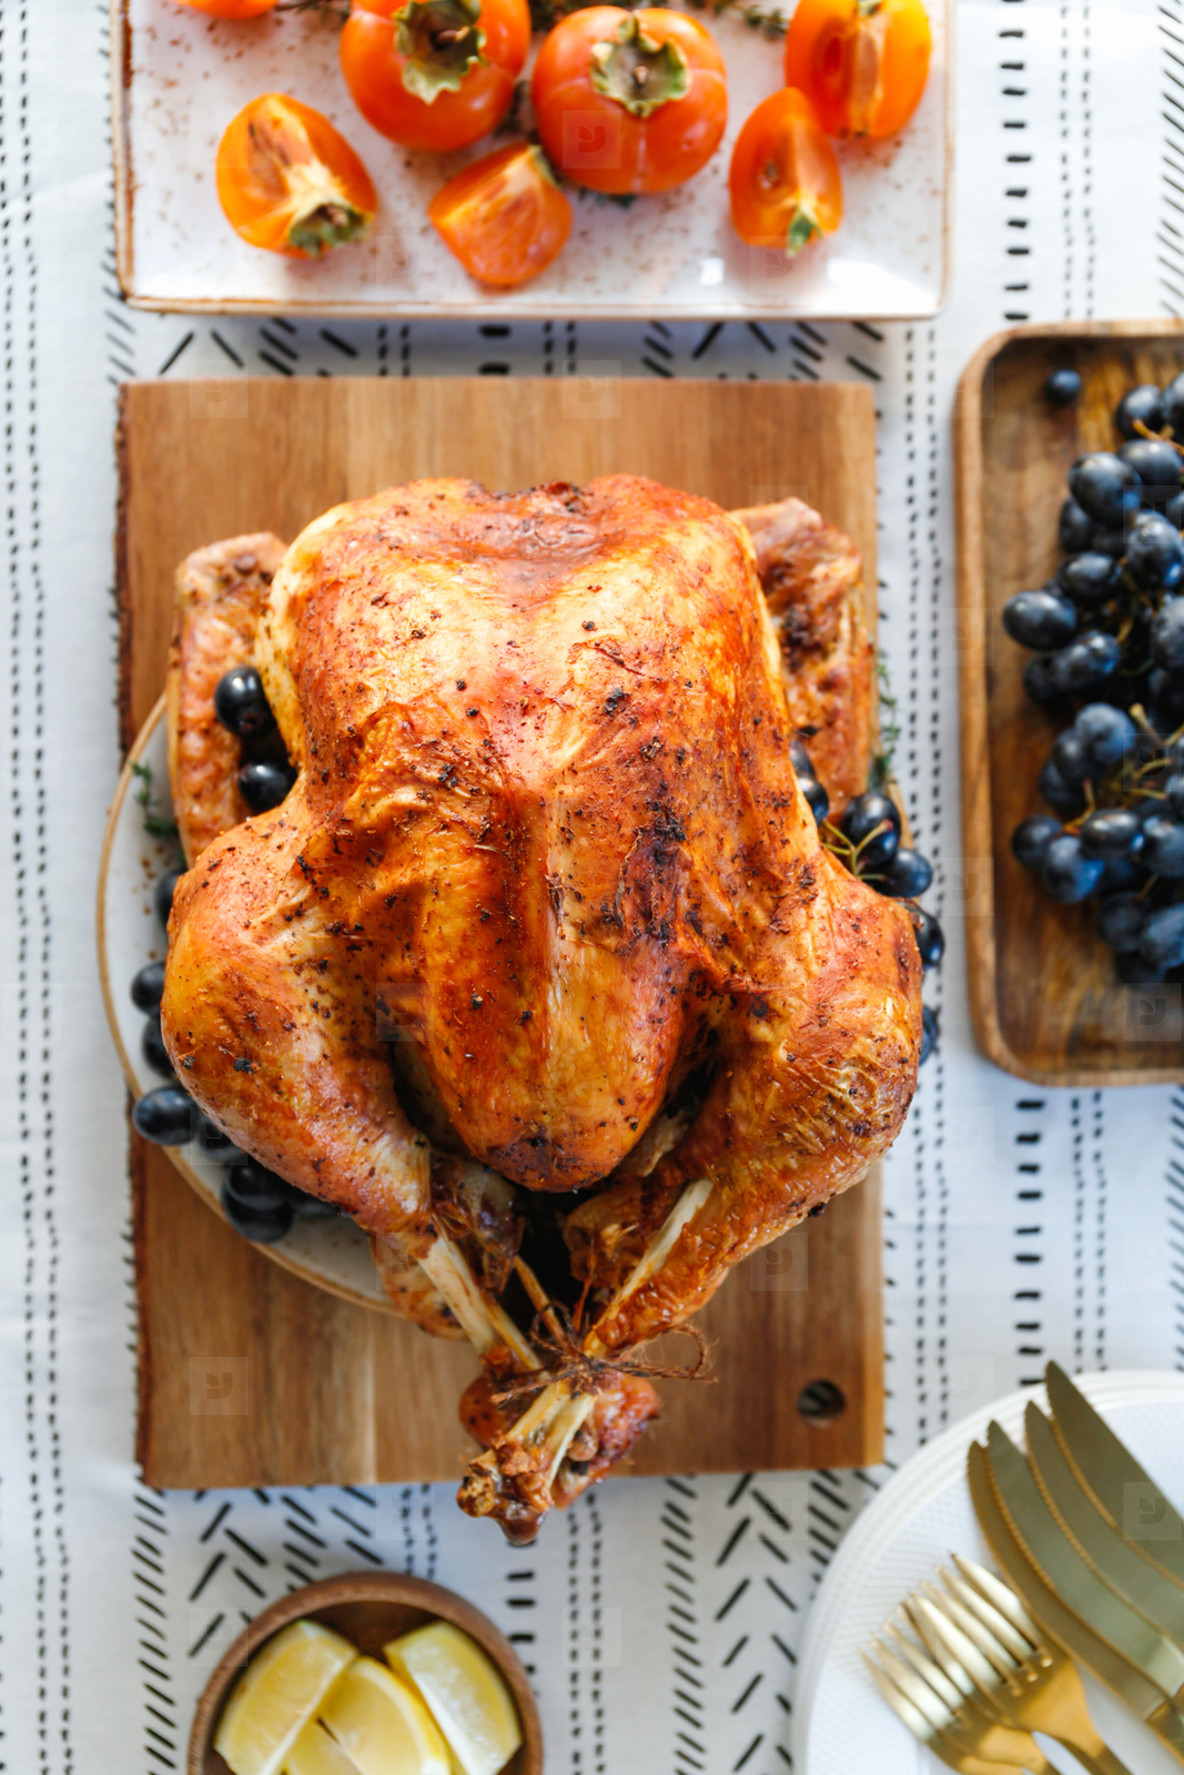 Roasted whole turkey on a table with persimmon  blue grape and lemon for family Thanksgiving Holiday  Top view  flat lay